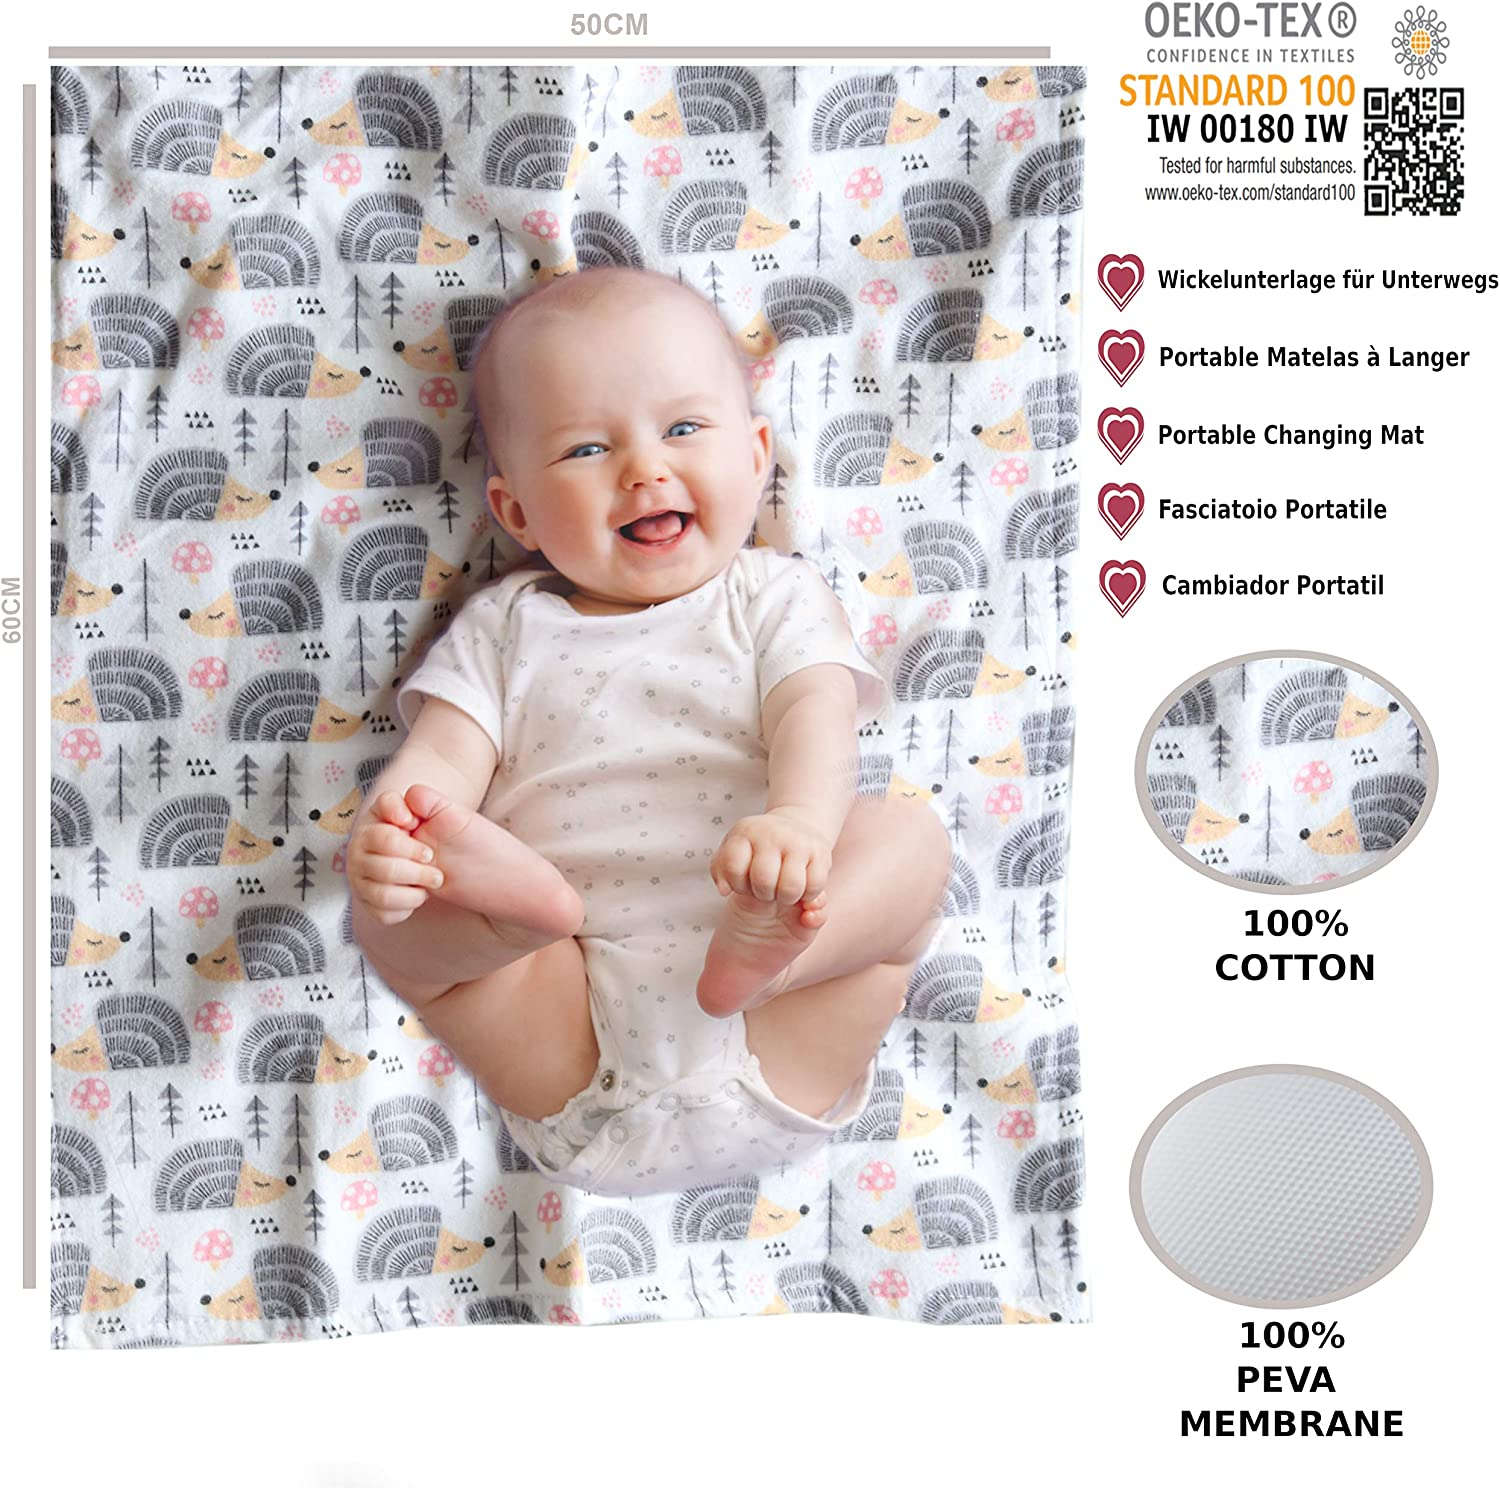 Unisex Large Muslin Cloths Baby 31 x 31 inch Muslin Squares White Portable Changing Mat Soft /& Absorbent Washable at 95/°C 5x Muslin Cloths for Baby 5x Flannel Burp Cloth 100/% Cotton